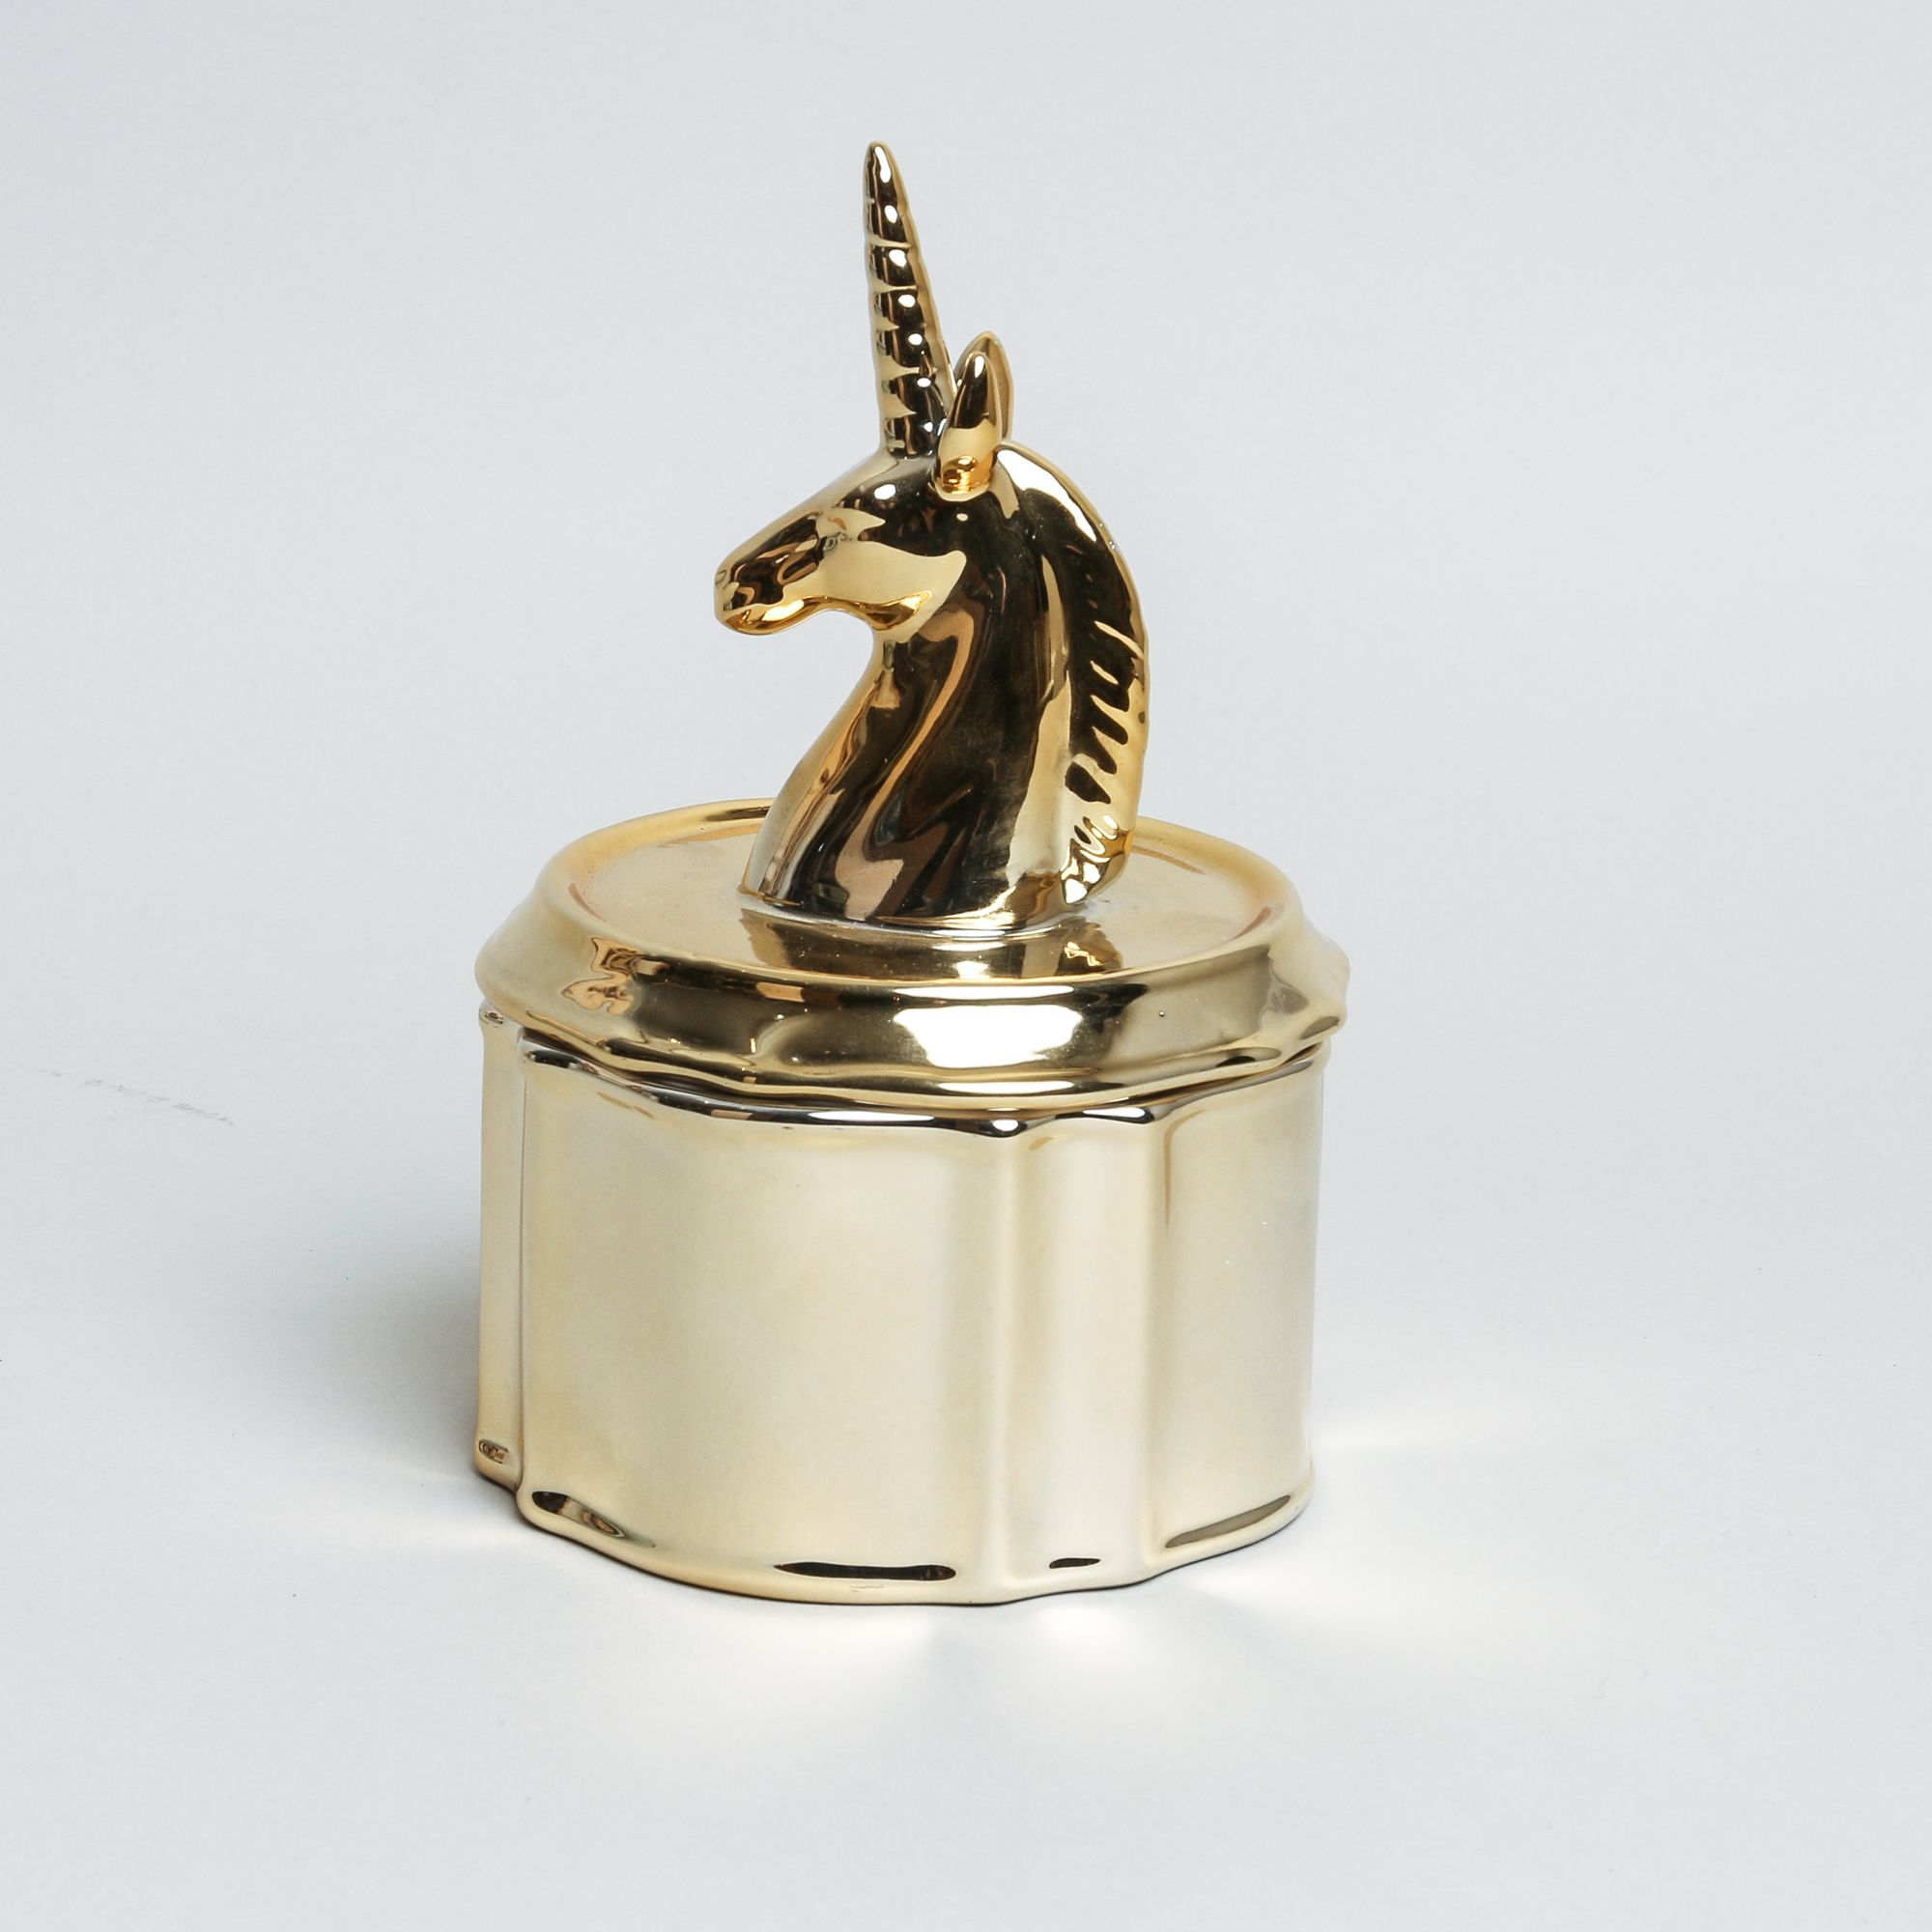 Gold porcelain unicorn jewellery box decorative porcelain jewellery